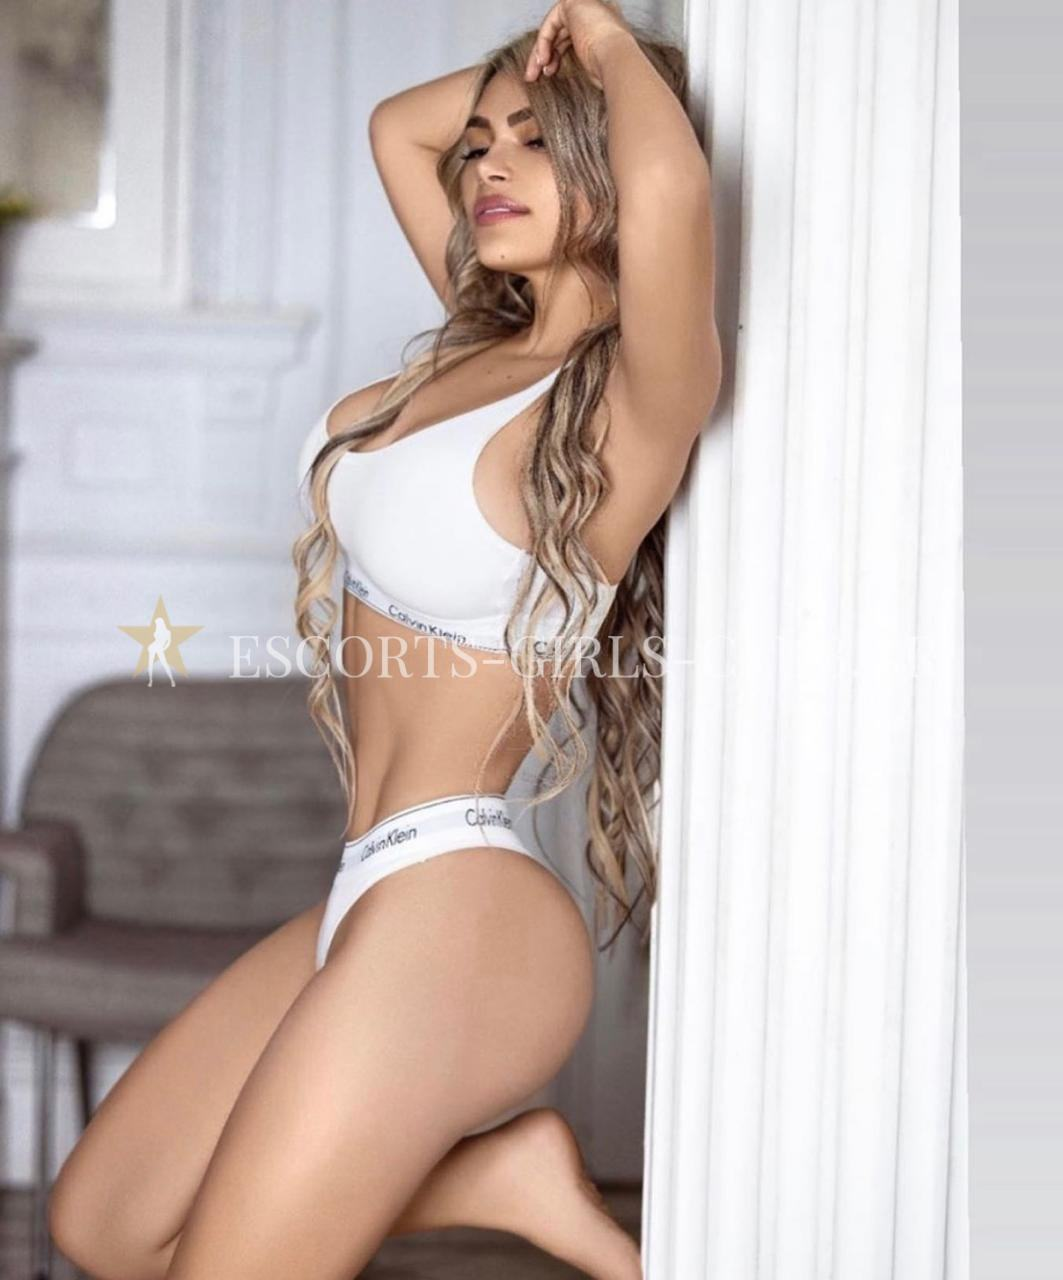 KATALINA SPANISH SUPER HOT ATHENS DIVA 10